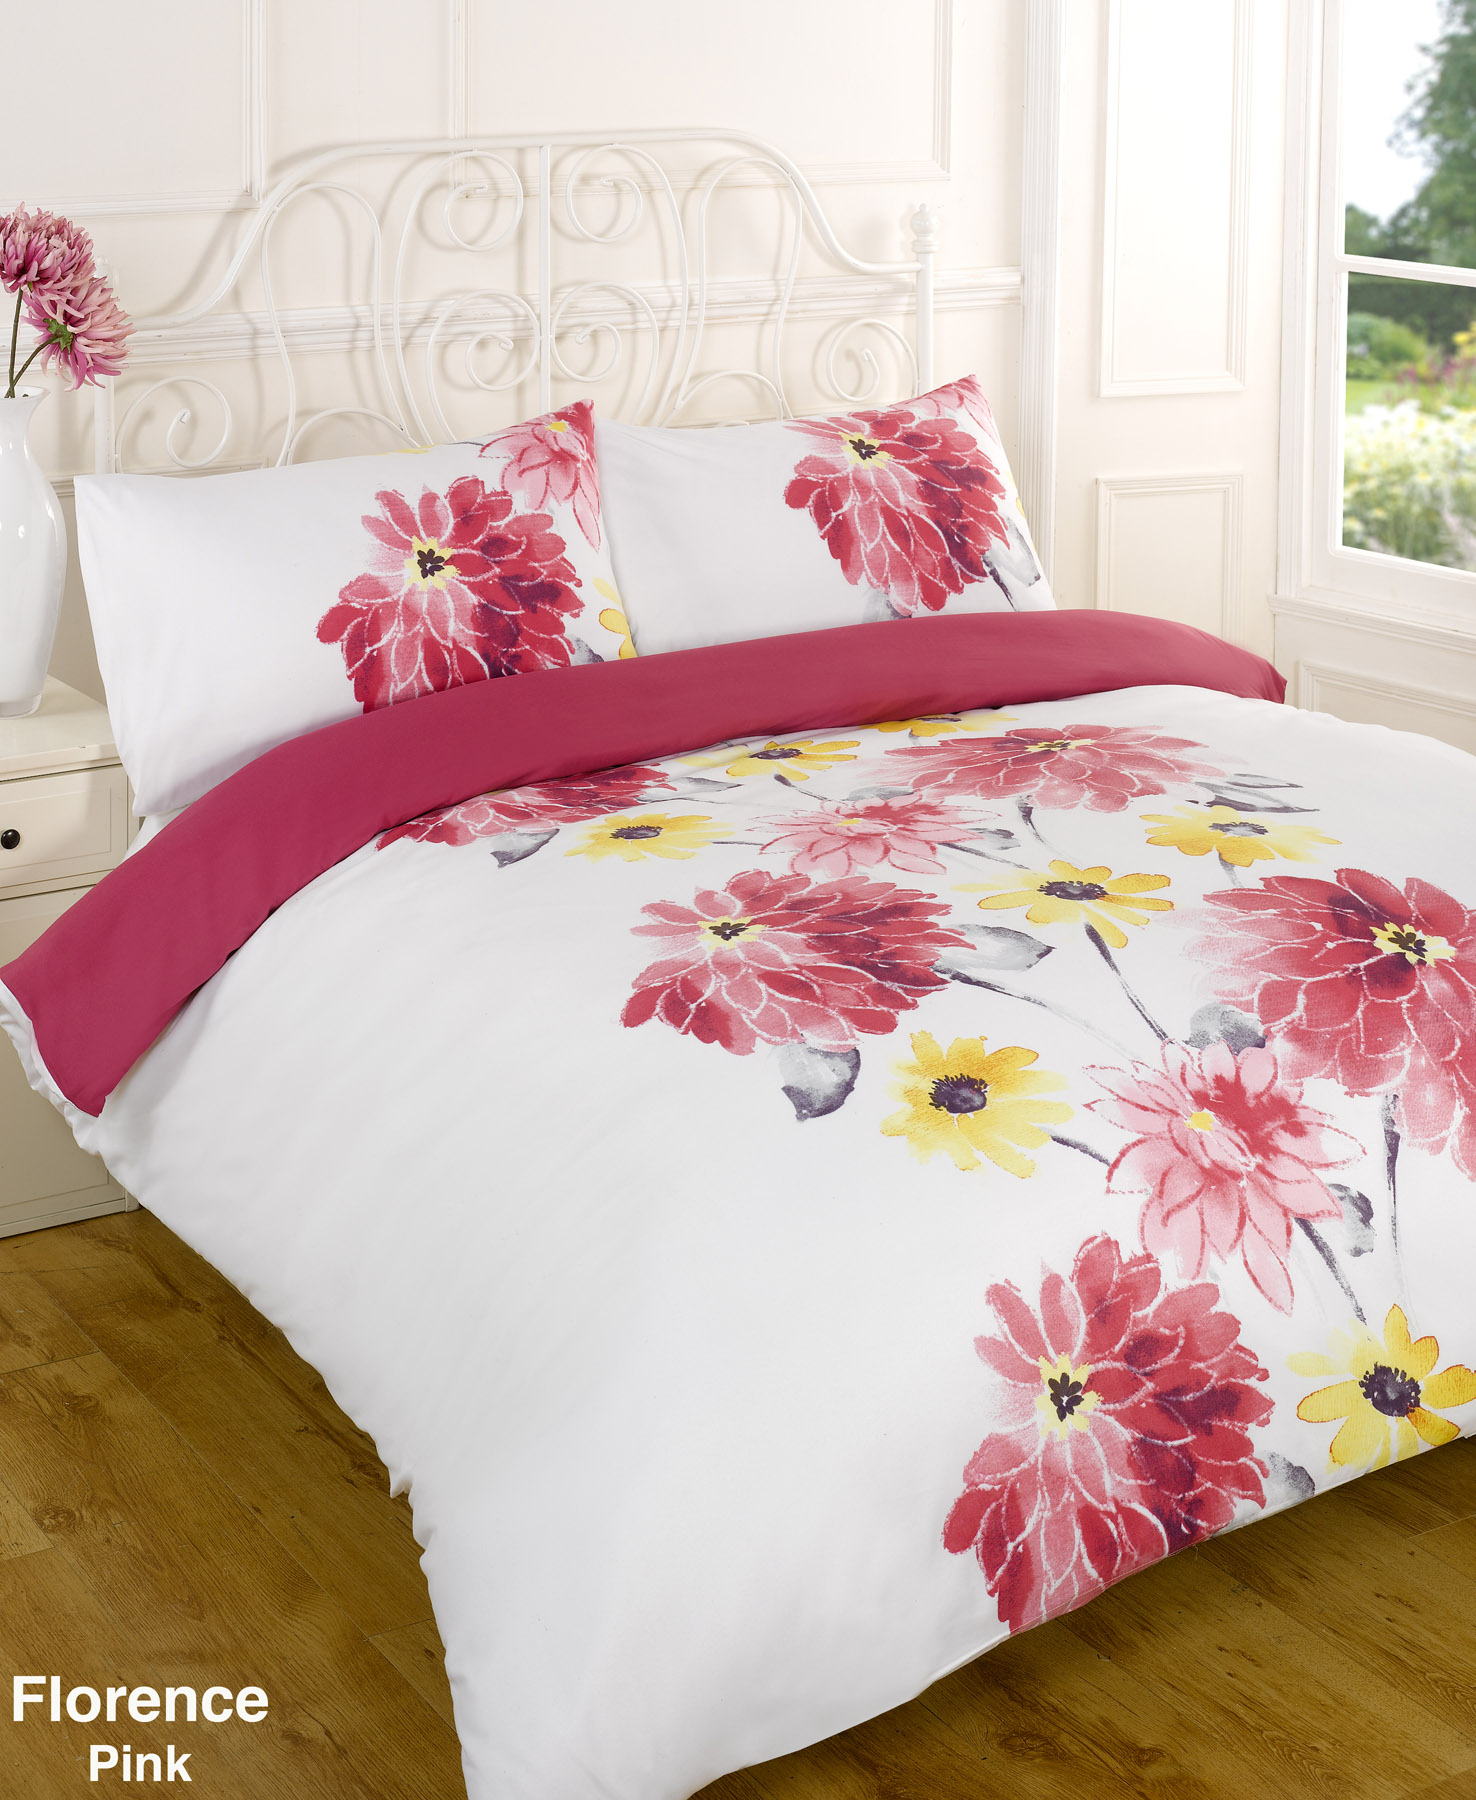 bettw scheset pink einzelbett doppelbett kingsize kingsize super king ebay. Black Bedroom Furniture Sets. Home Design Ideas